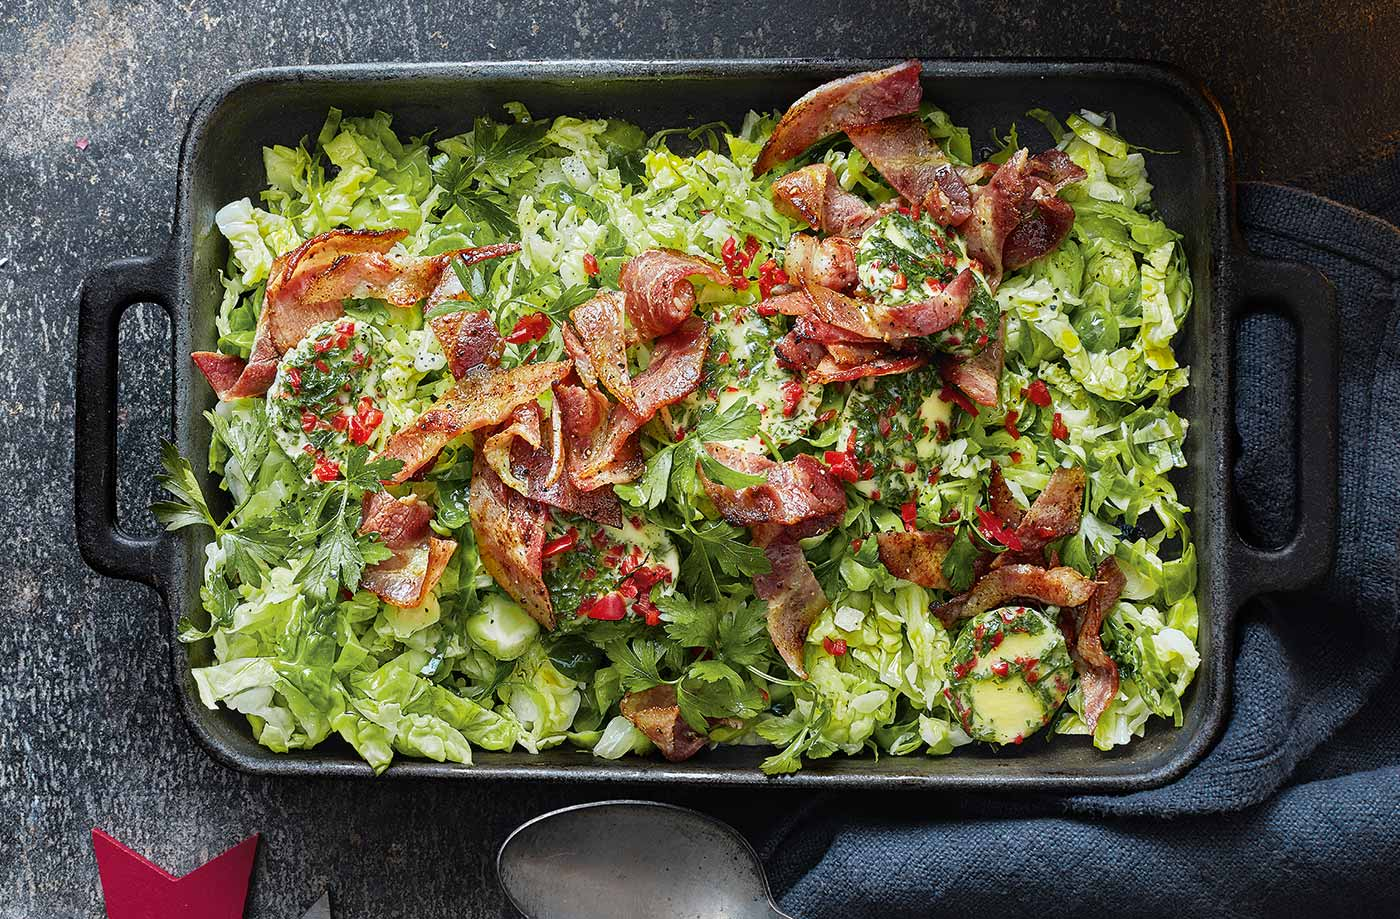 Shredded sprouts with bacon and chilli butter recipe